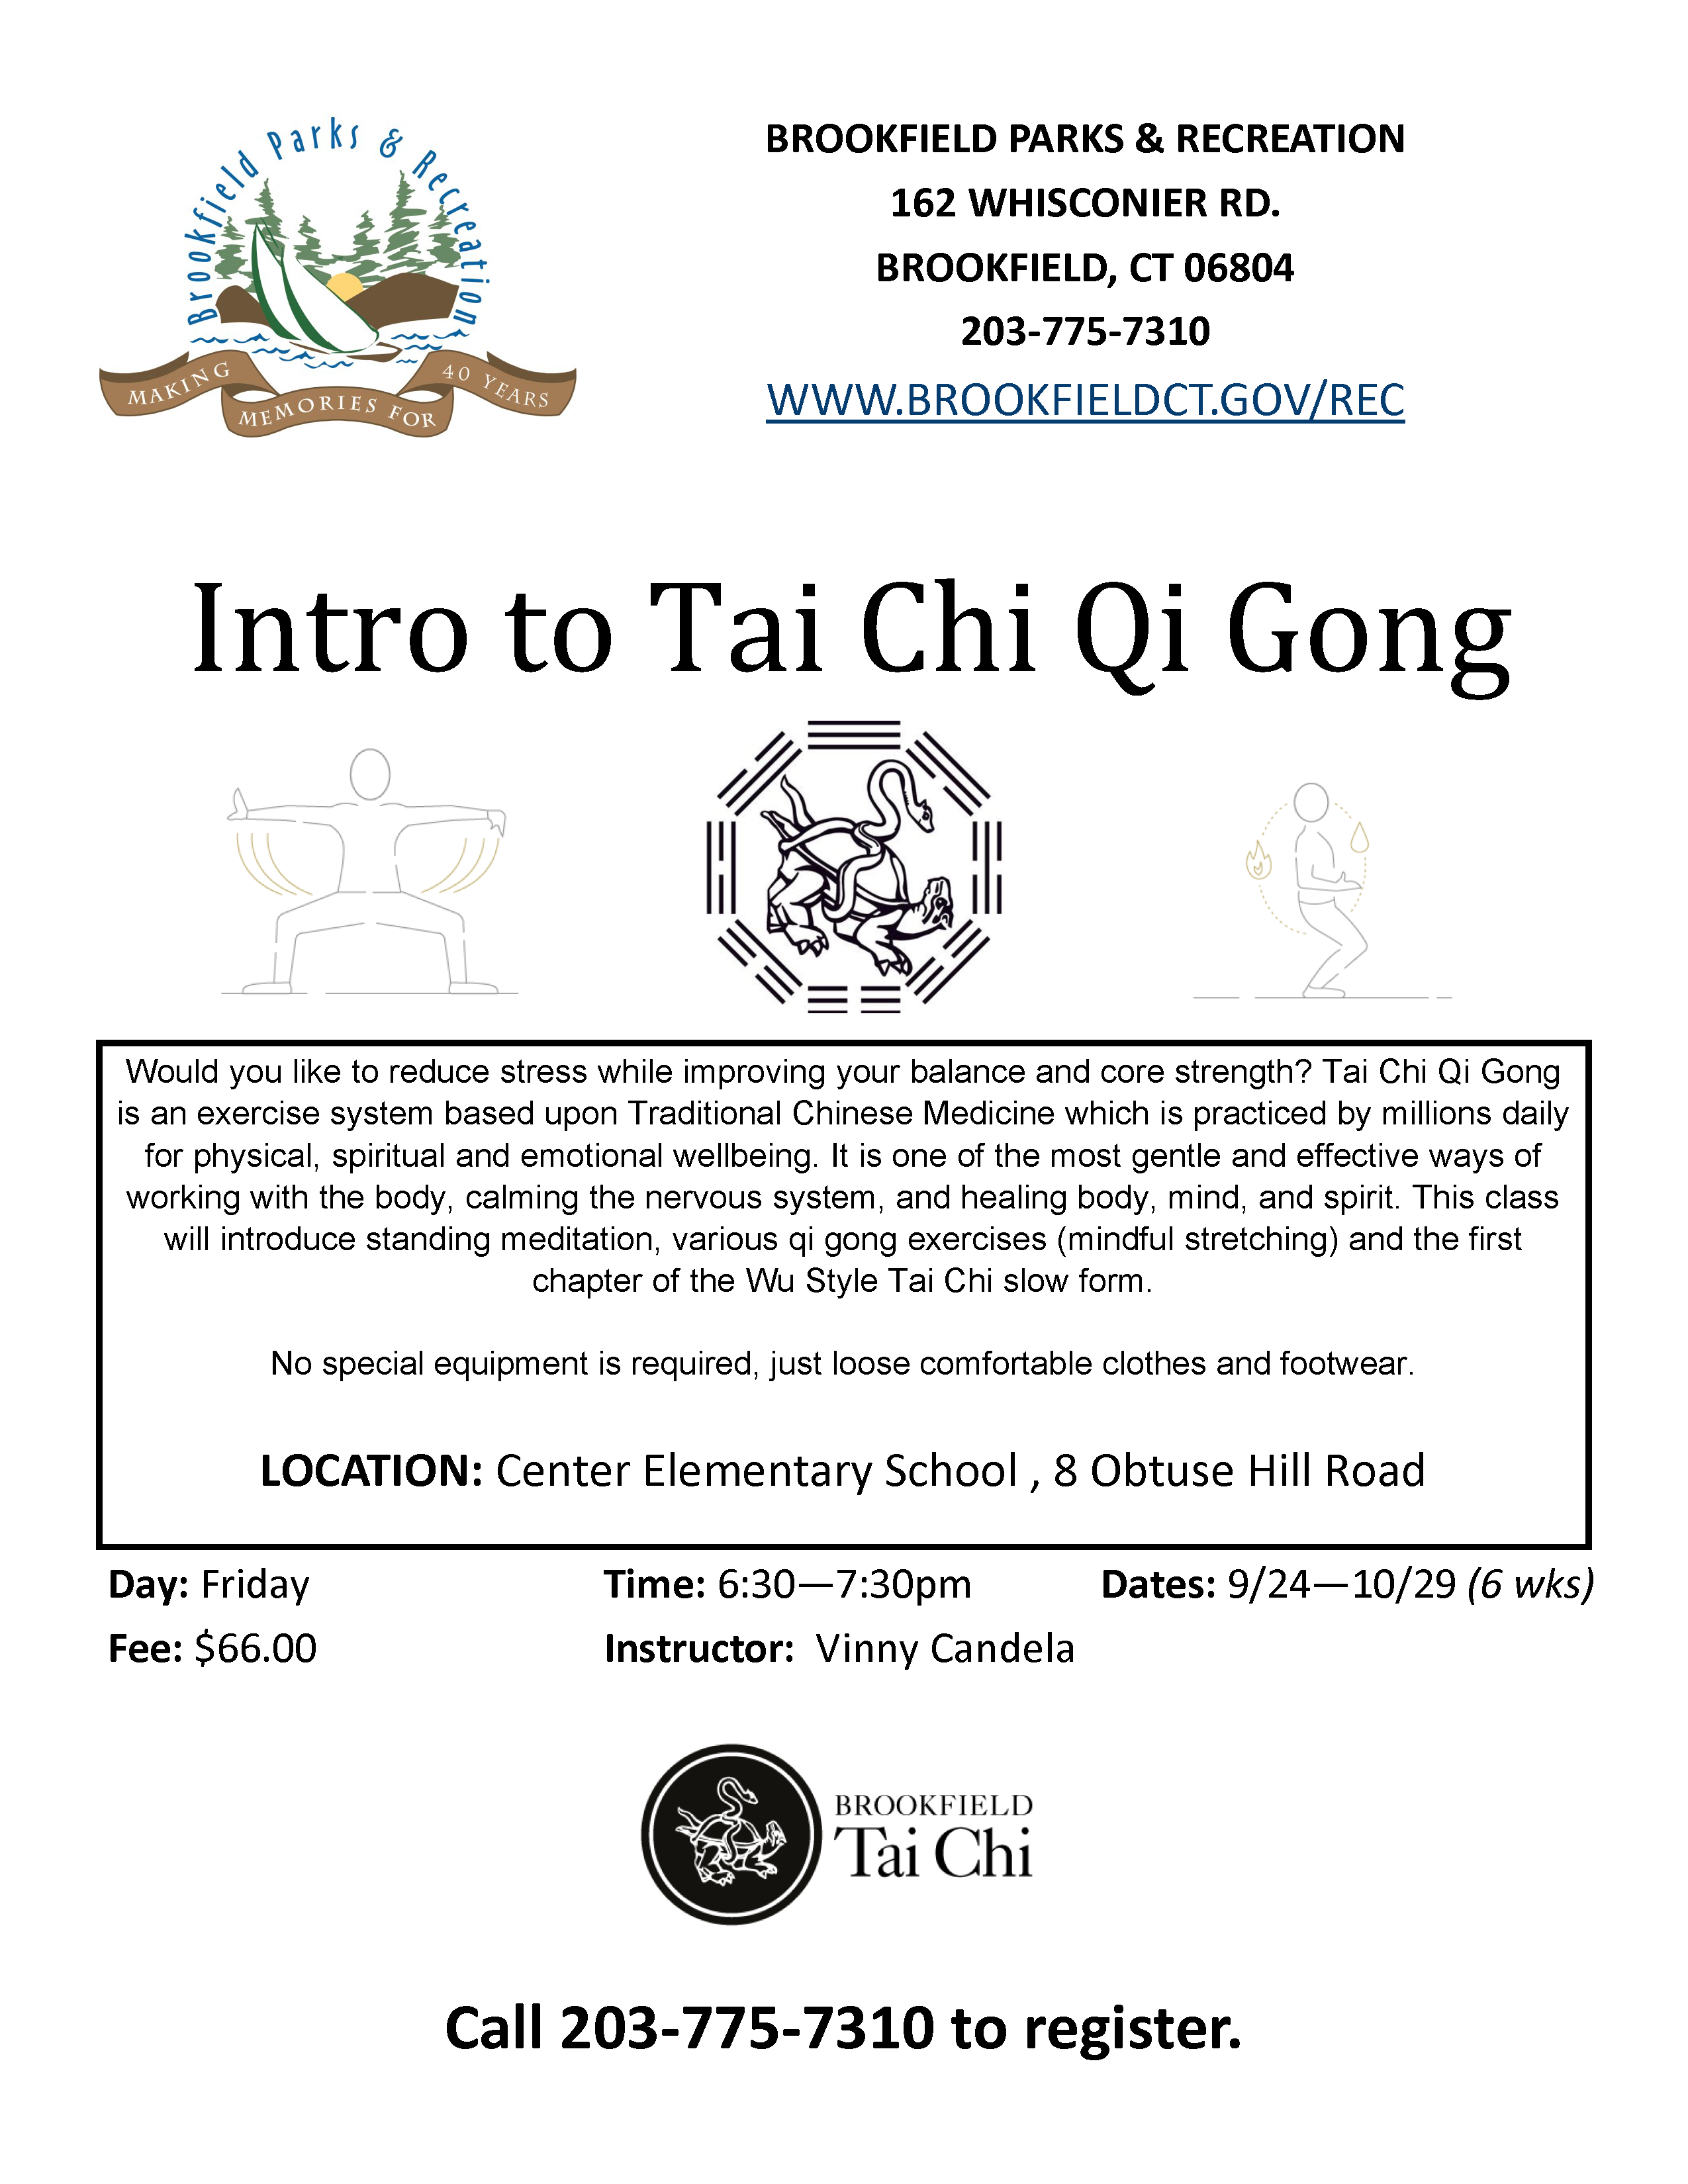 Intro to Tai Chi with Parks and Rec starts this Friday @ 6:30pm